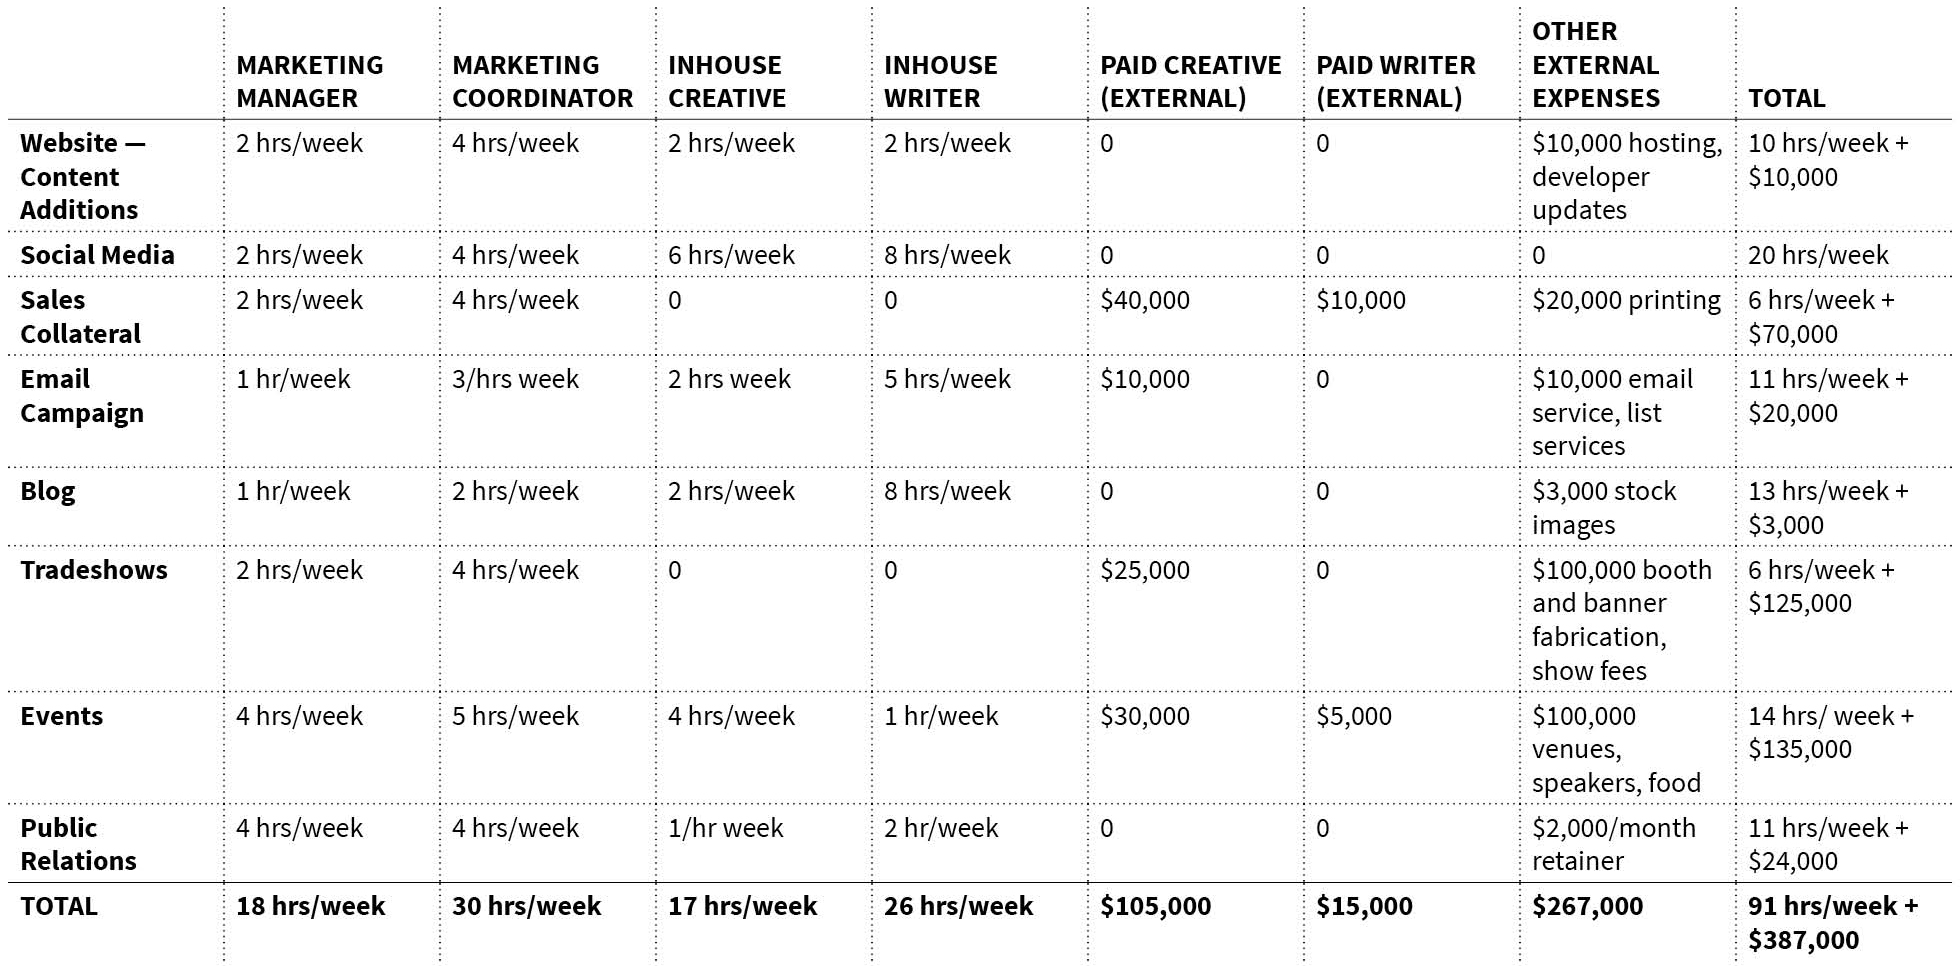 5 By 5 Design Budgeting For Marketing